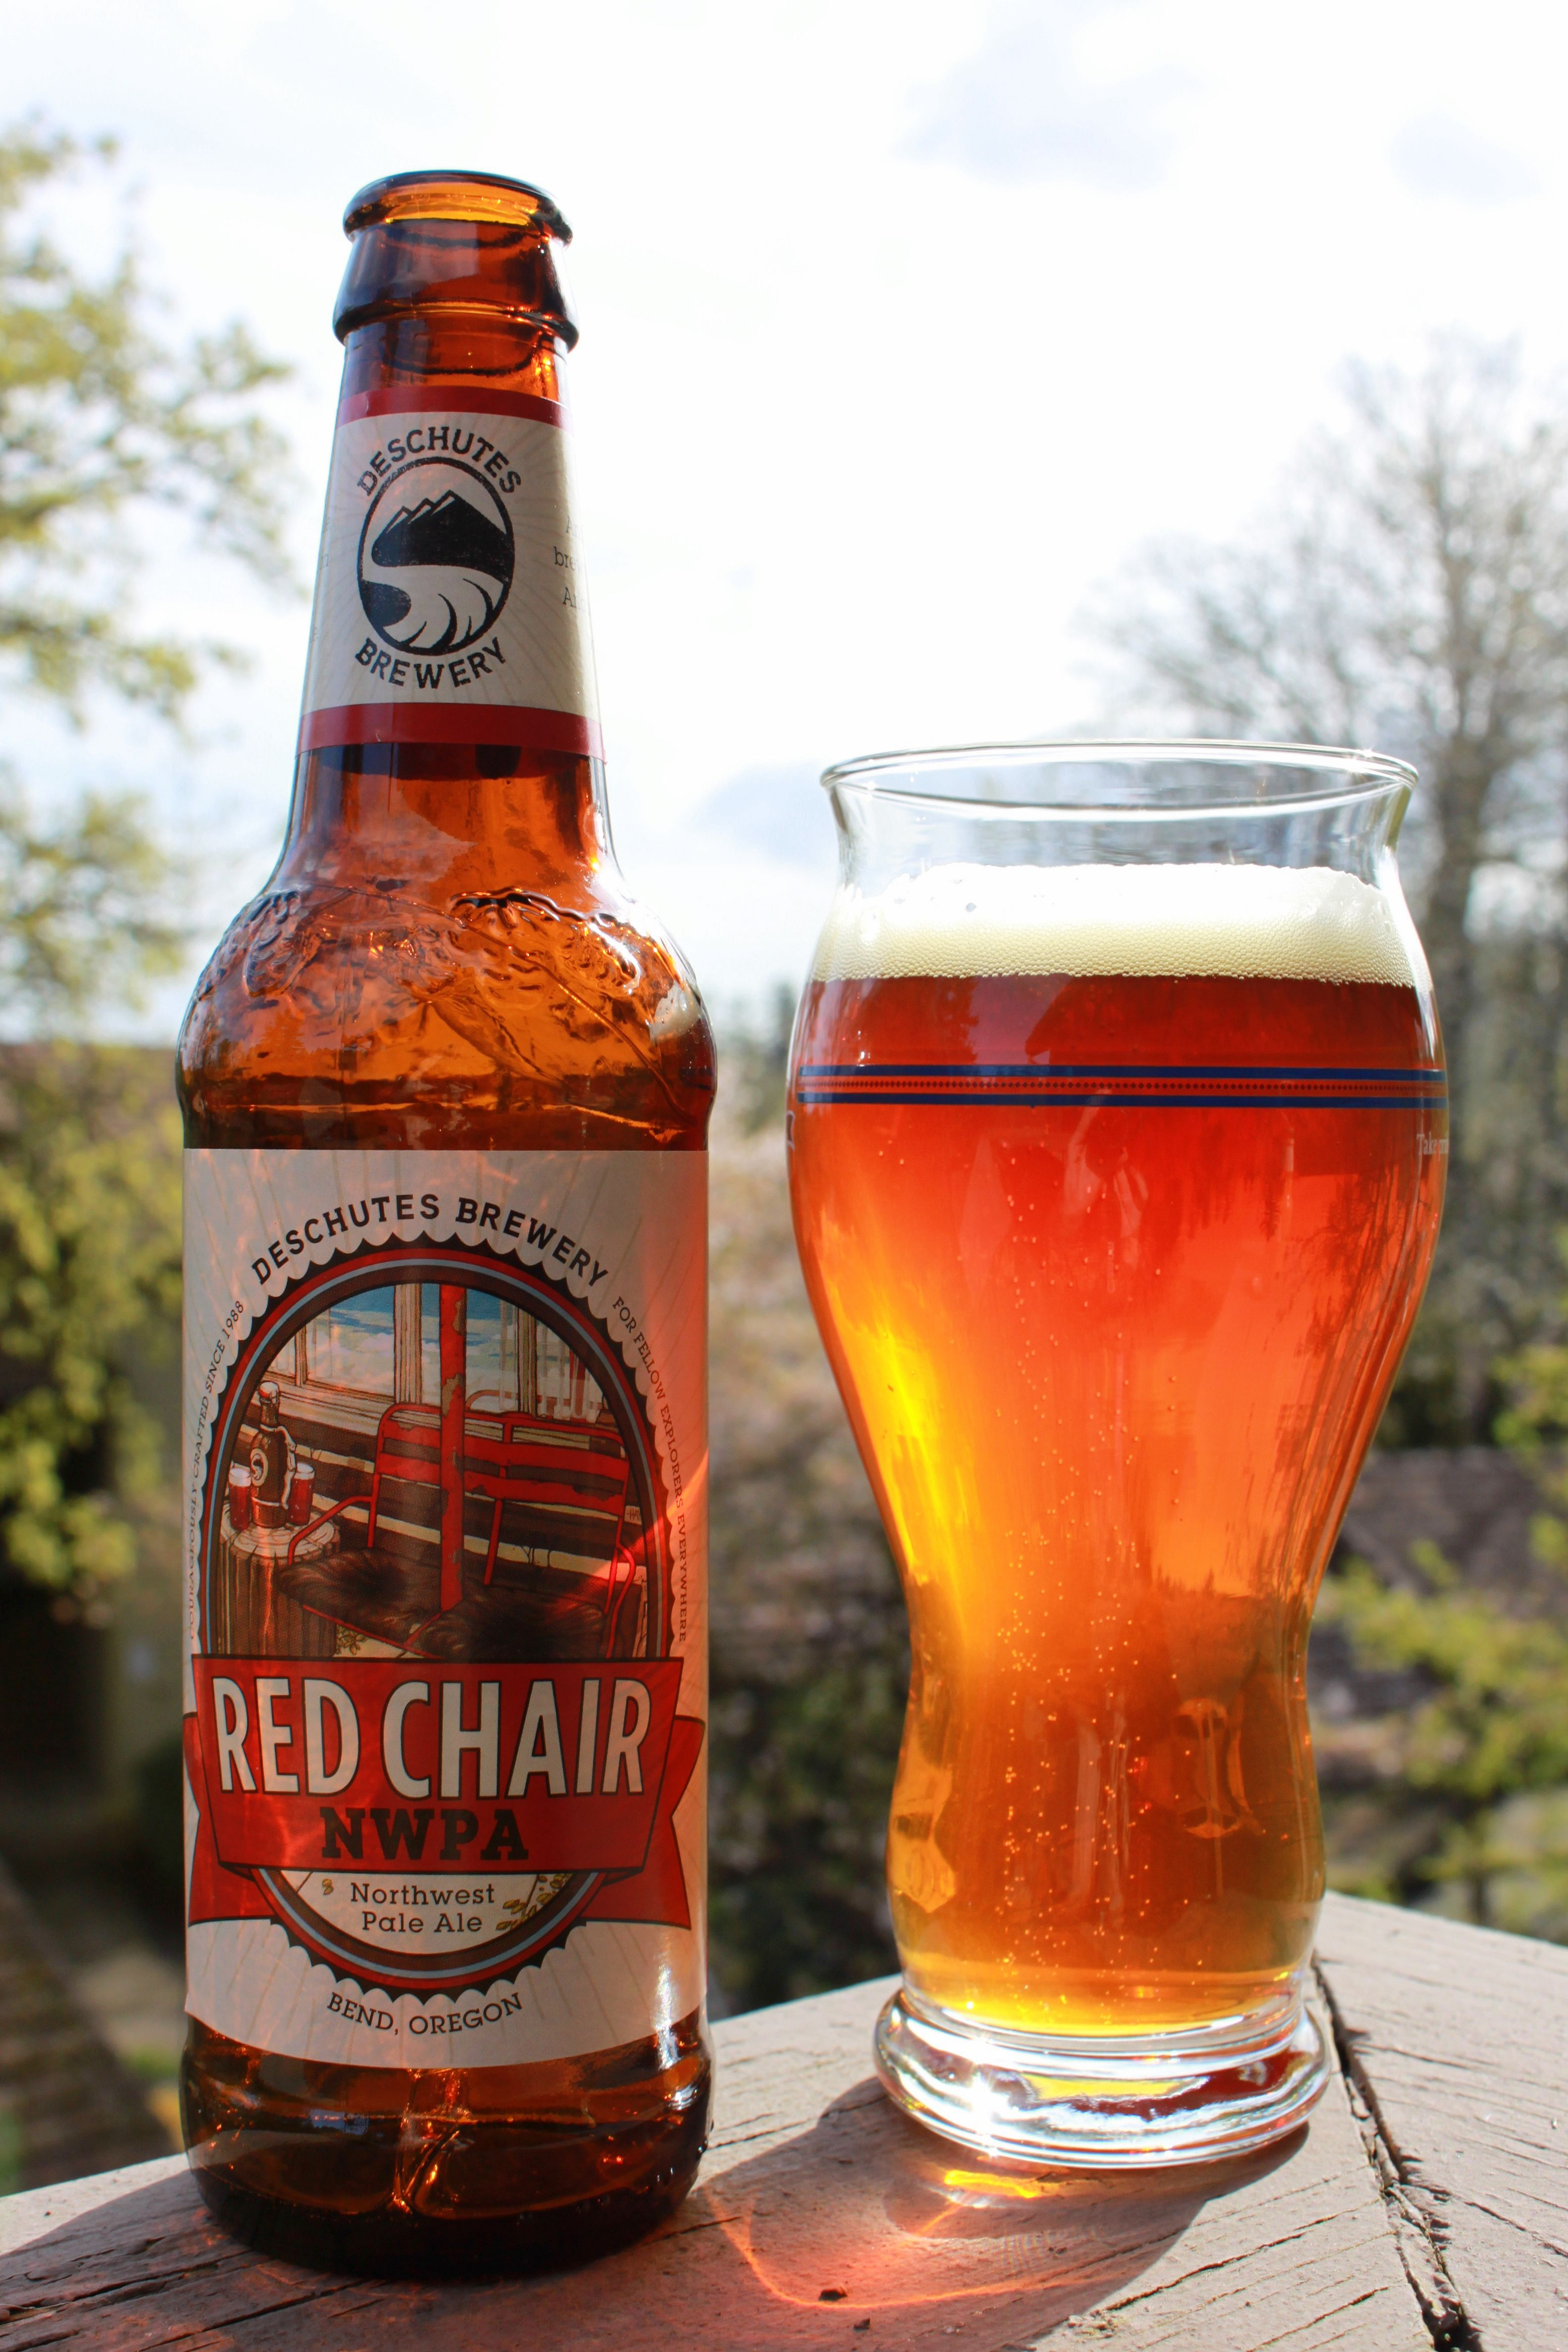 deschutes red chair hideaway sleeper northwest pale ale nwpa essentially